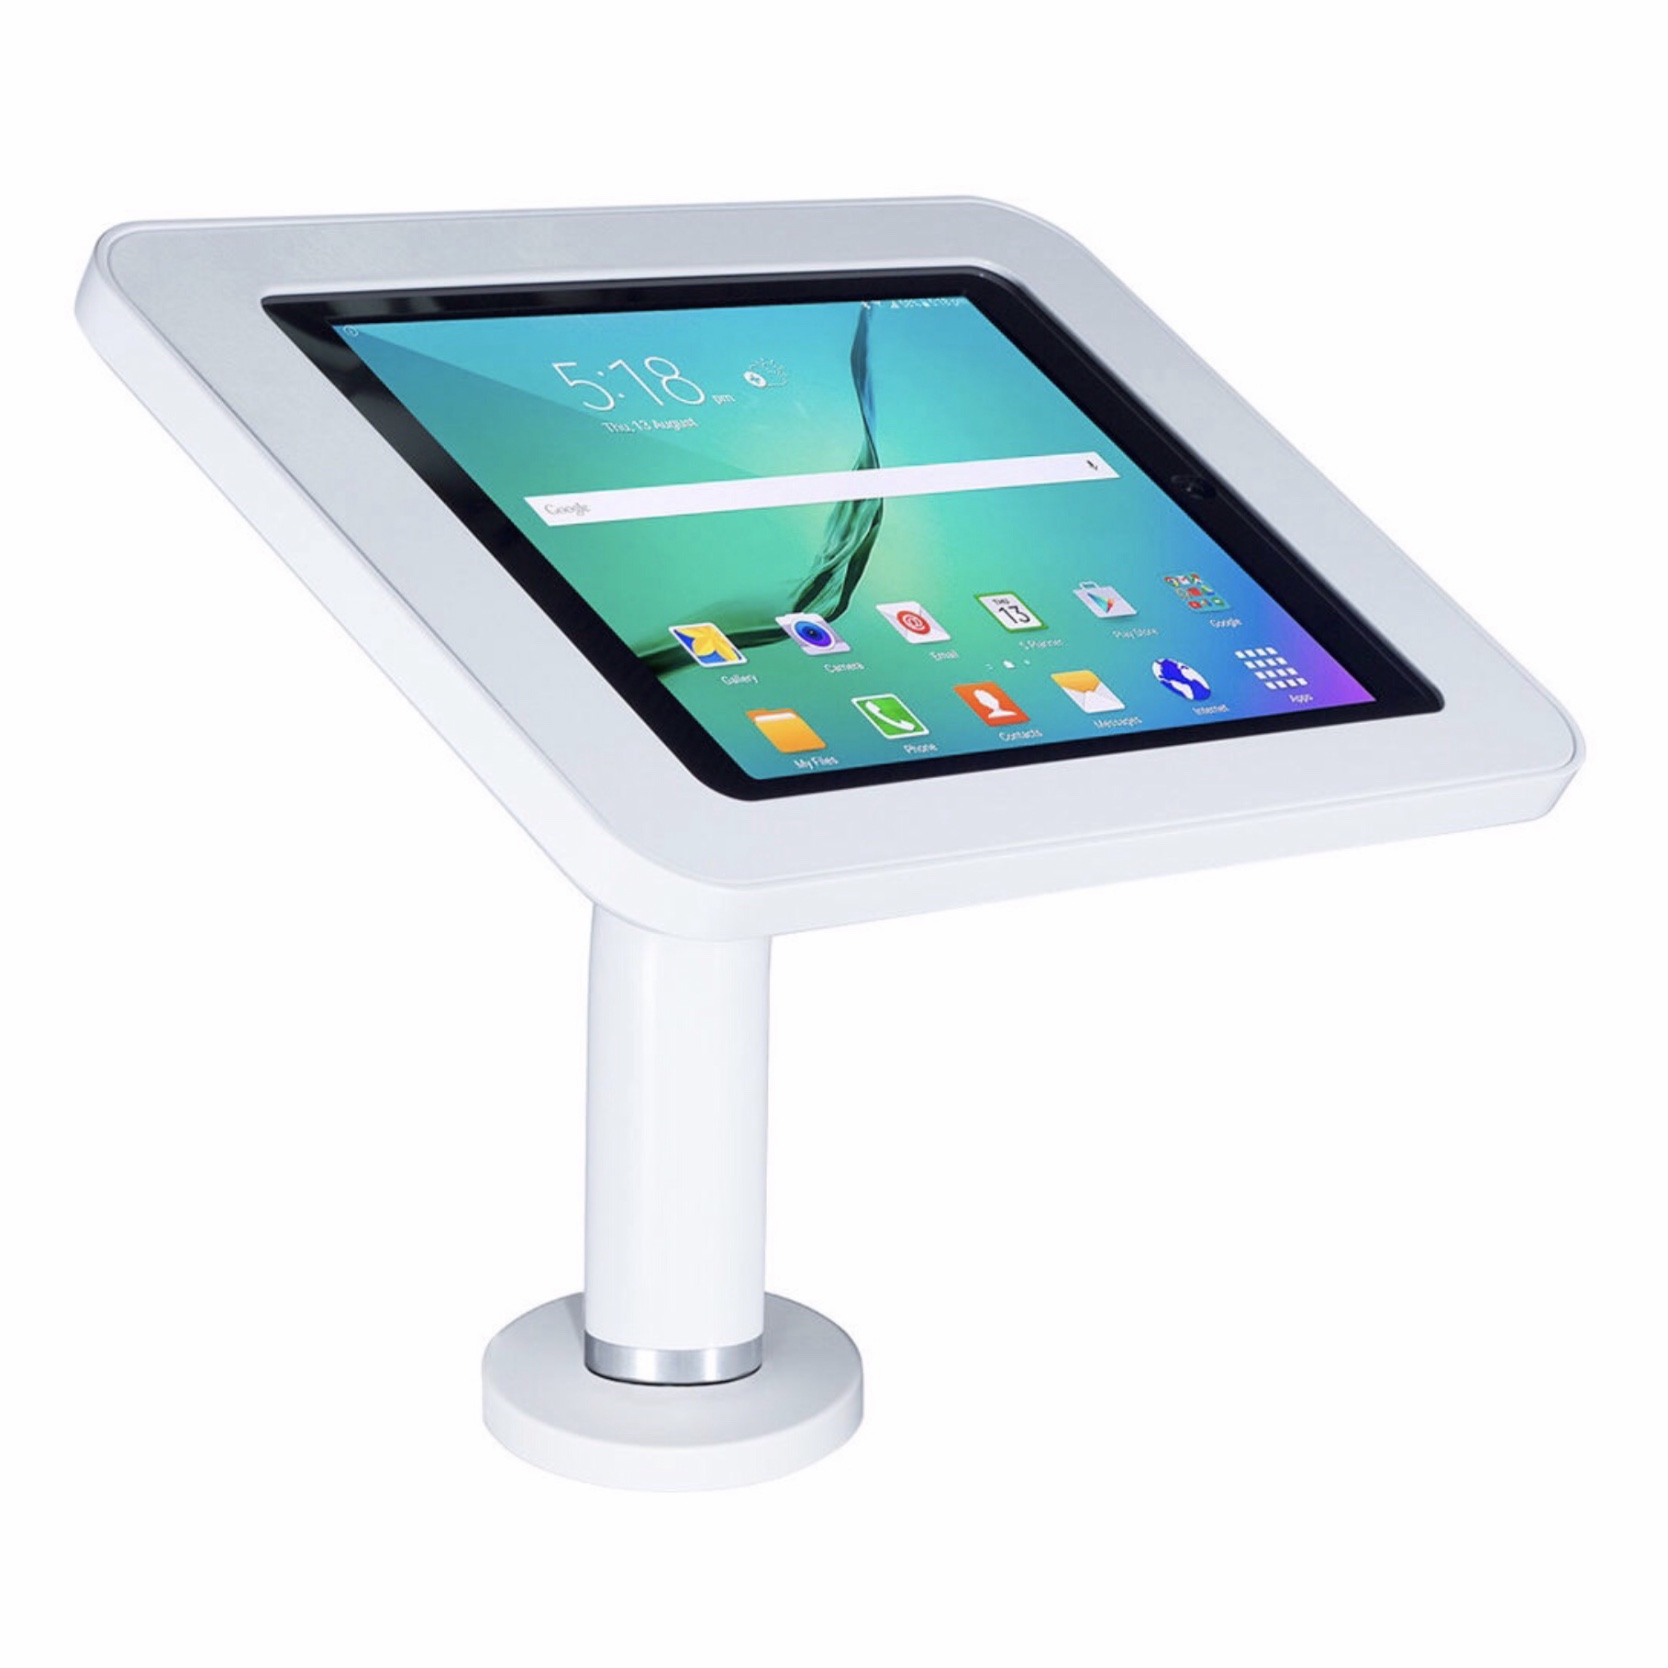 Borne support de table Galaxy TAB S3 et S2 9.7 pouces FullTab Blanc